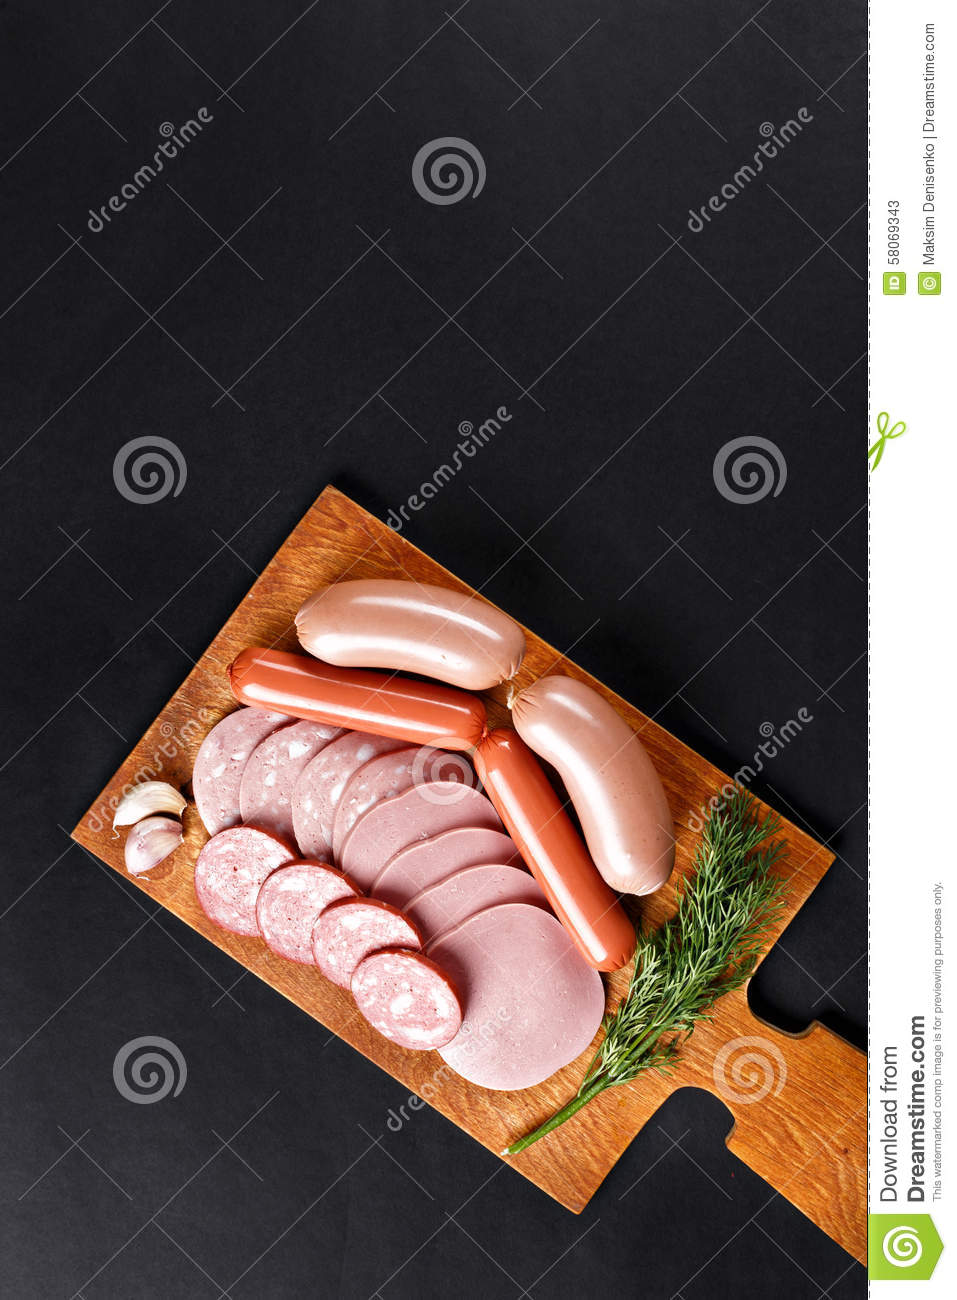 Mix of boiled sausage slices on cutting board